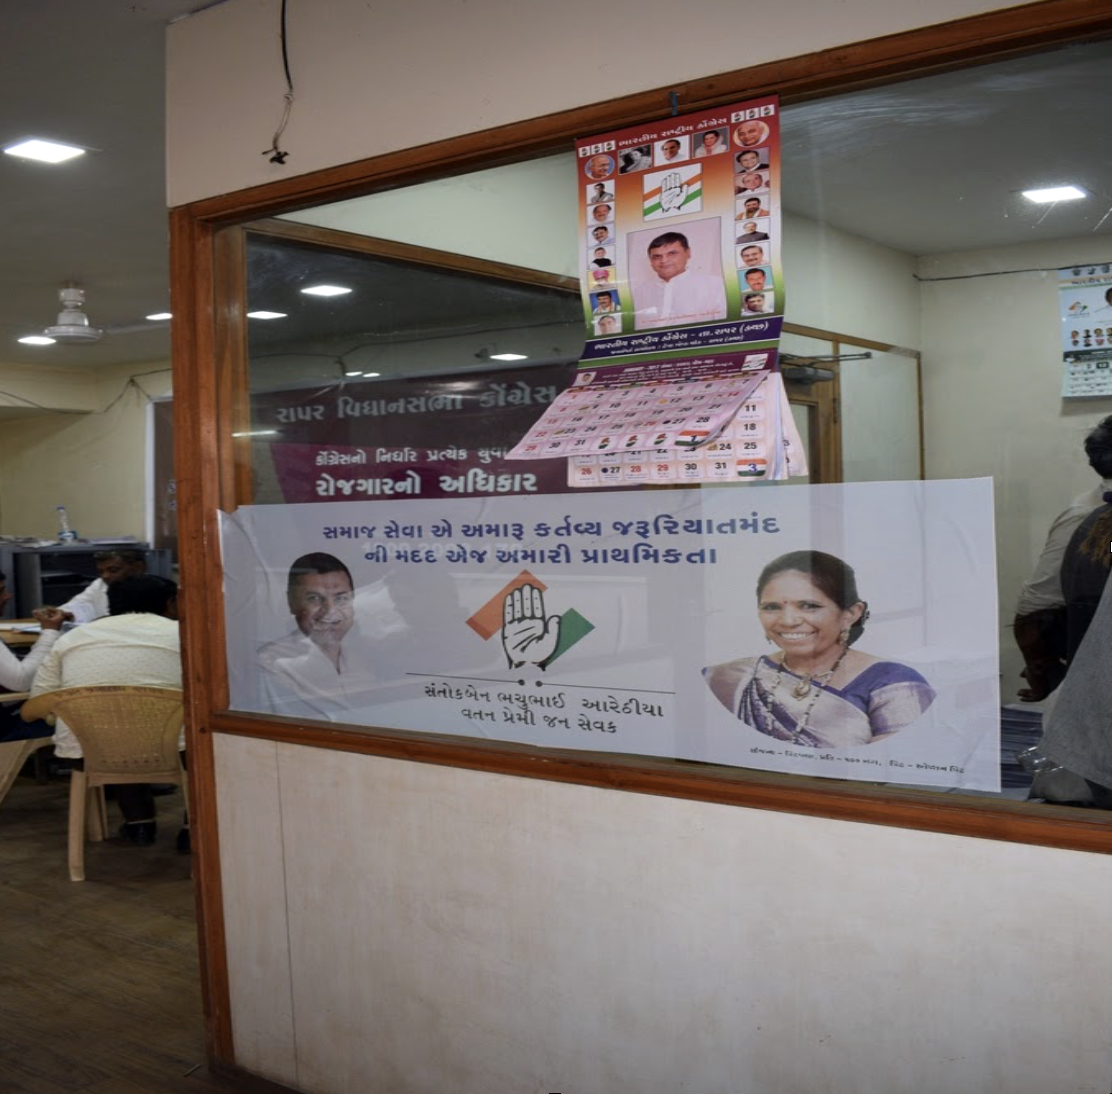 Santokben Arethiya's campaign poster featuring her husband Bachubhai Arethiya at the Congress office in Rapar.